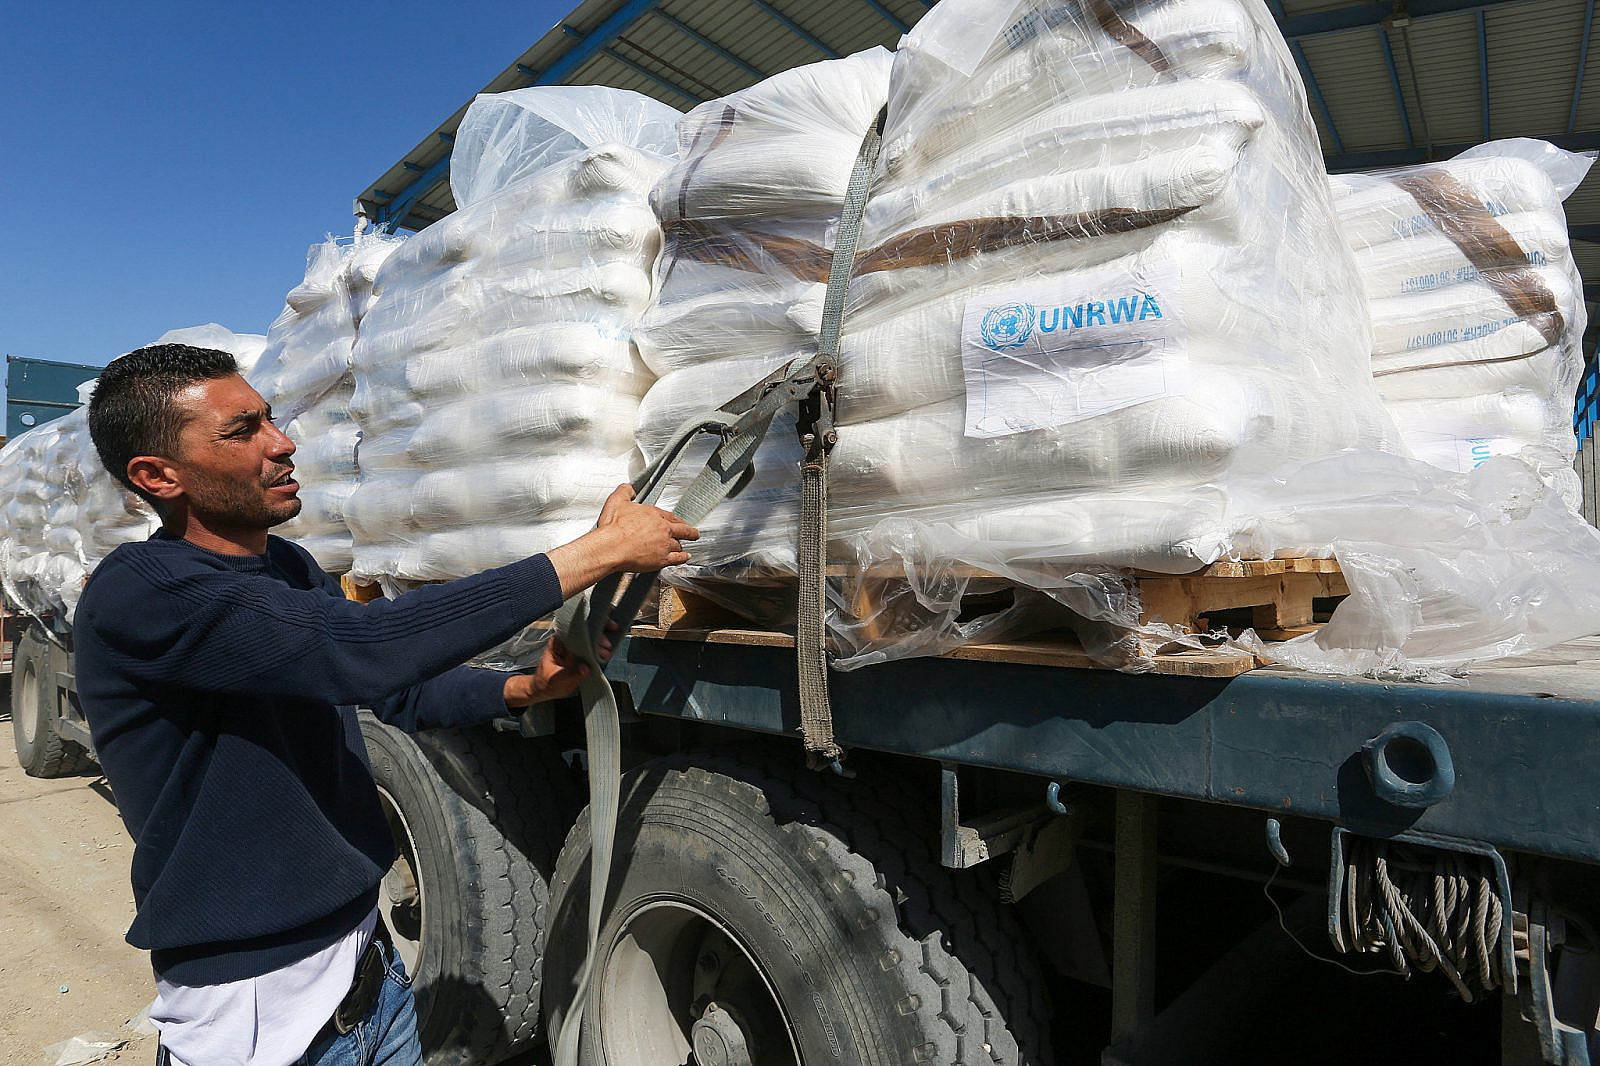 Trucks loaded with goods enter the Gaza Strip from the Kerem Shalom crossing, the only crossing between the Gaza Strip and Israel entering aid and goods, in Rafah in the southern Gaza Strip, on May 12, 2019. (Abed Rahim Khatib/Flash90)